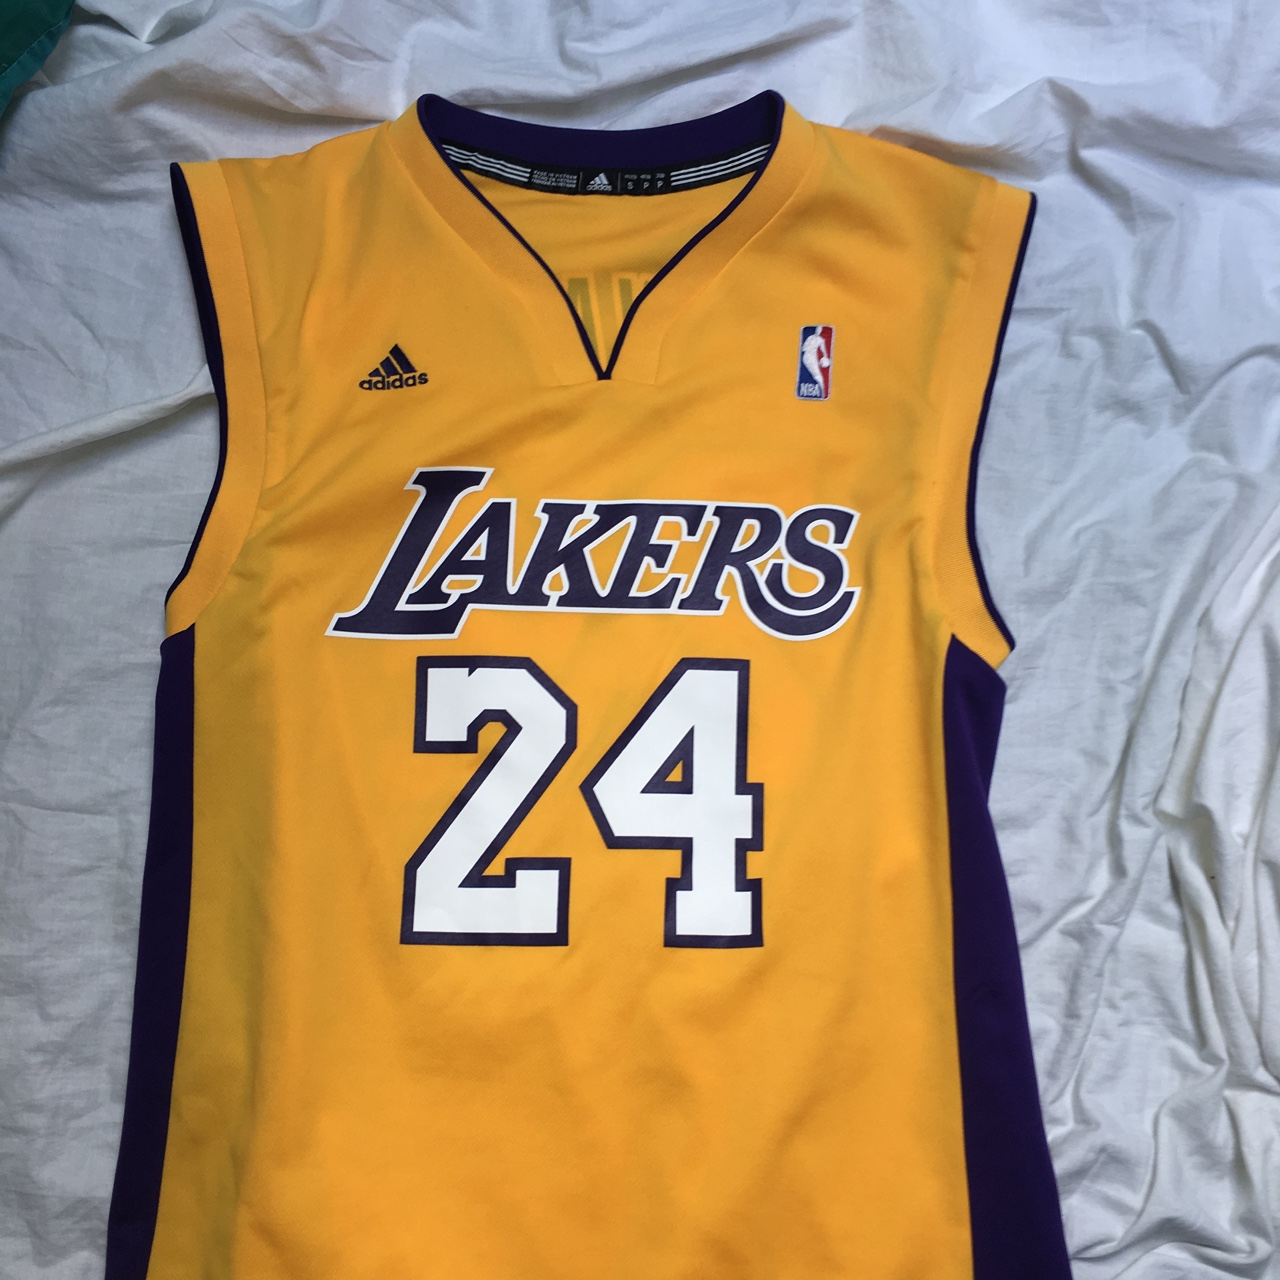 online store e61b2 244a4 Adidas lakers jersey Number 24 Kobe Bryant aka... - Depop